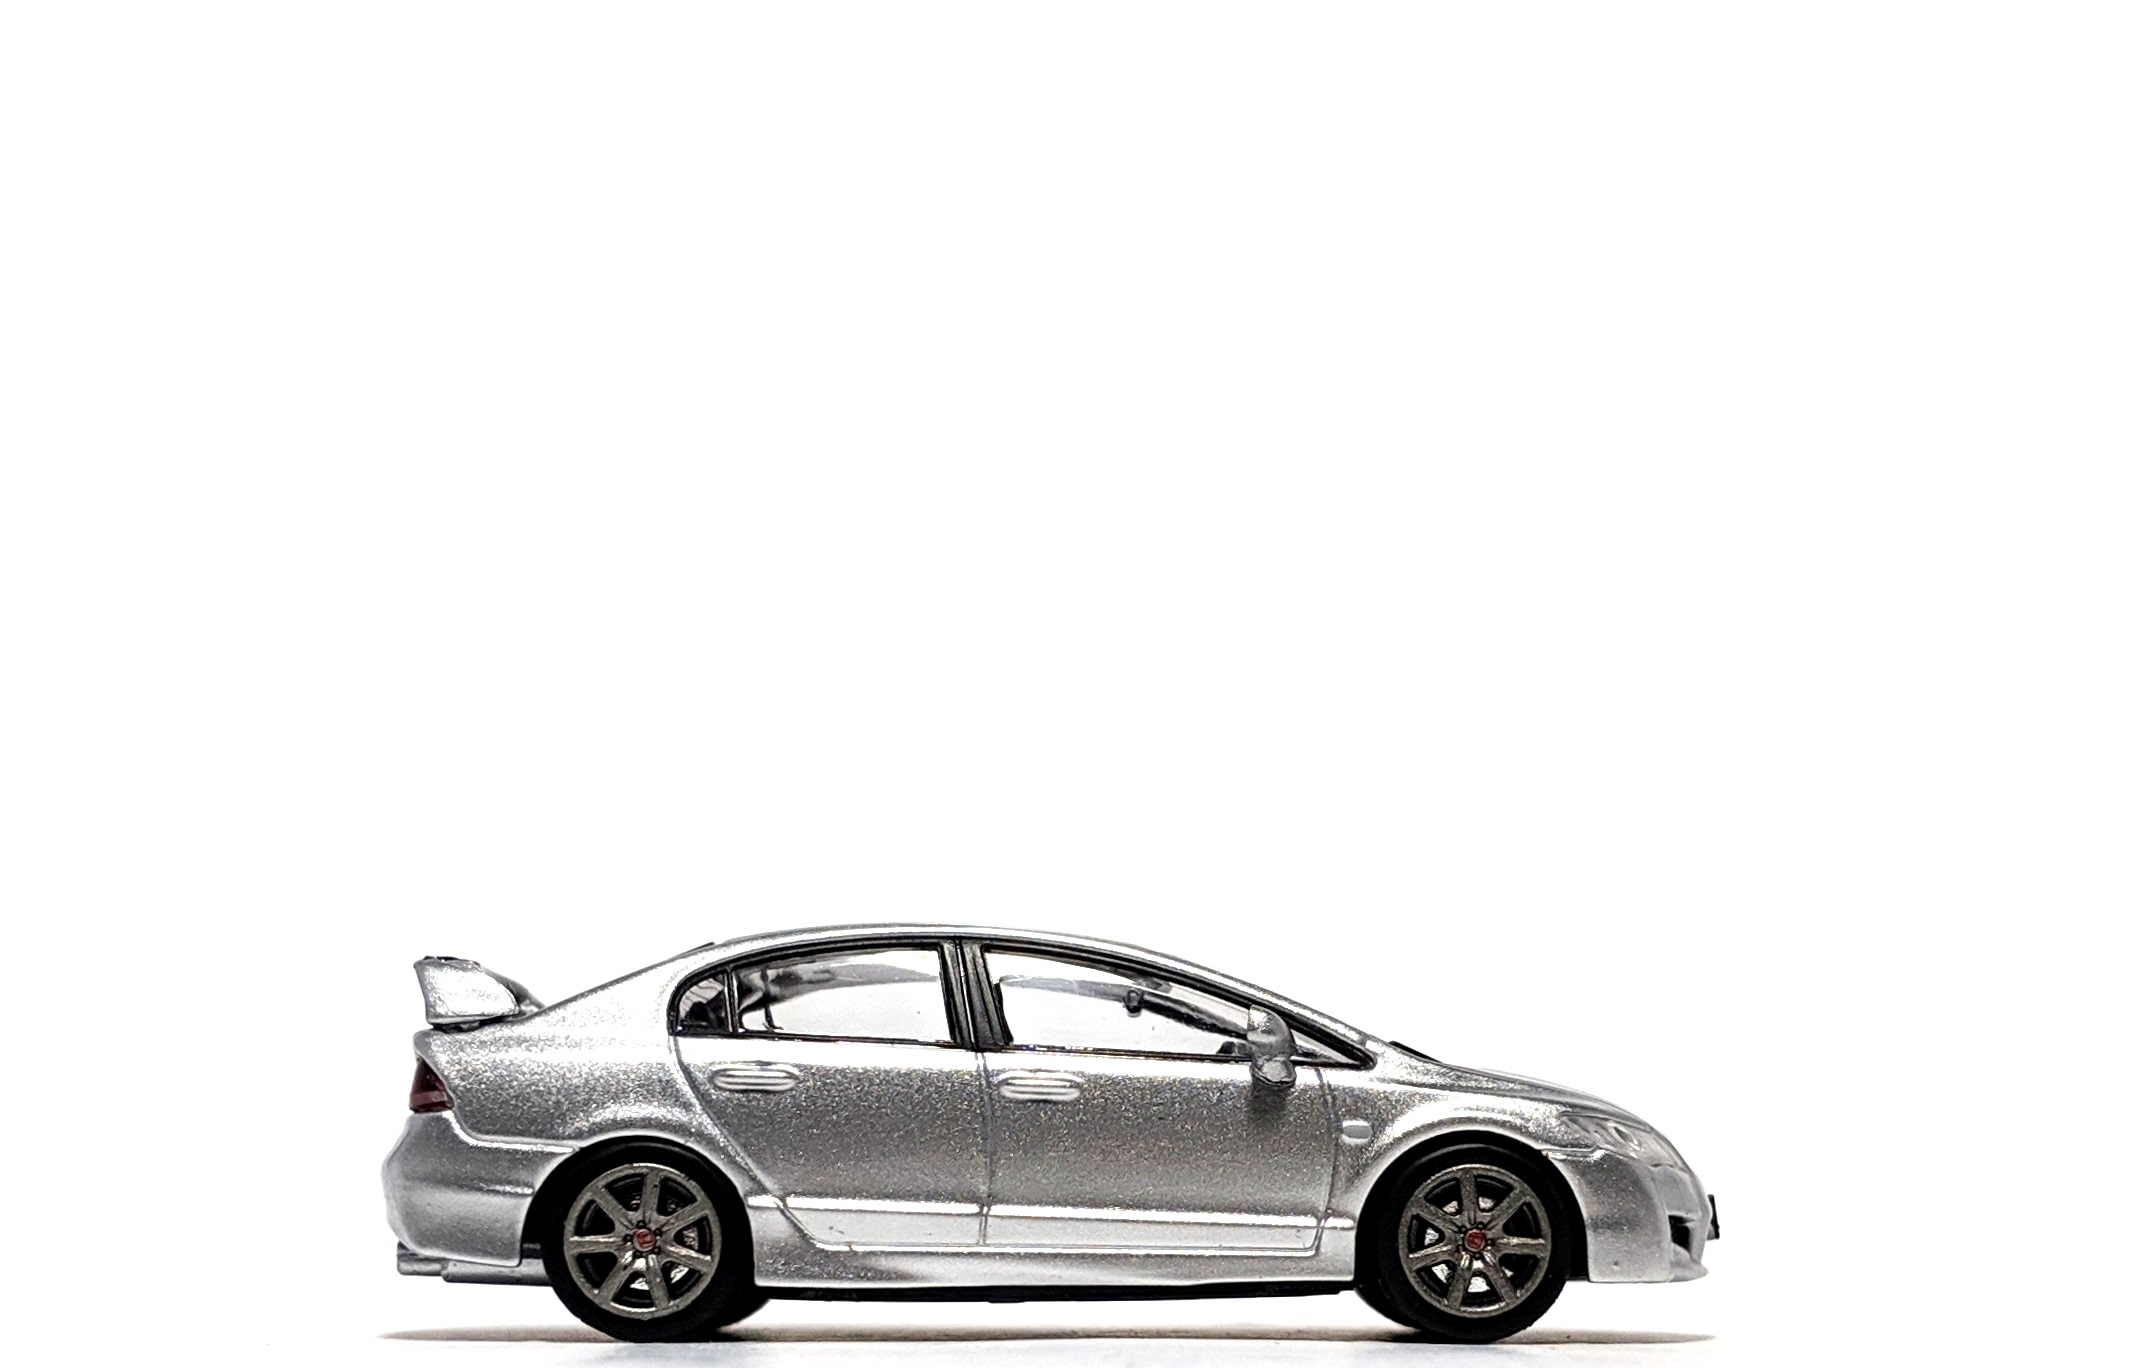 Honda Civic Type R FD2, by Inno64